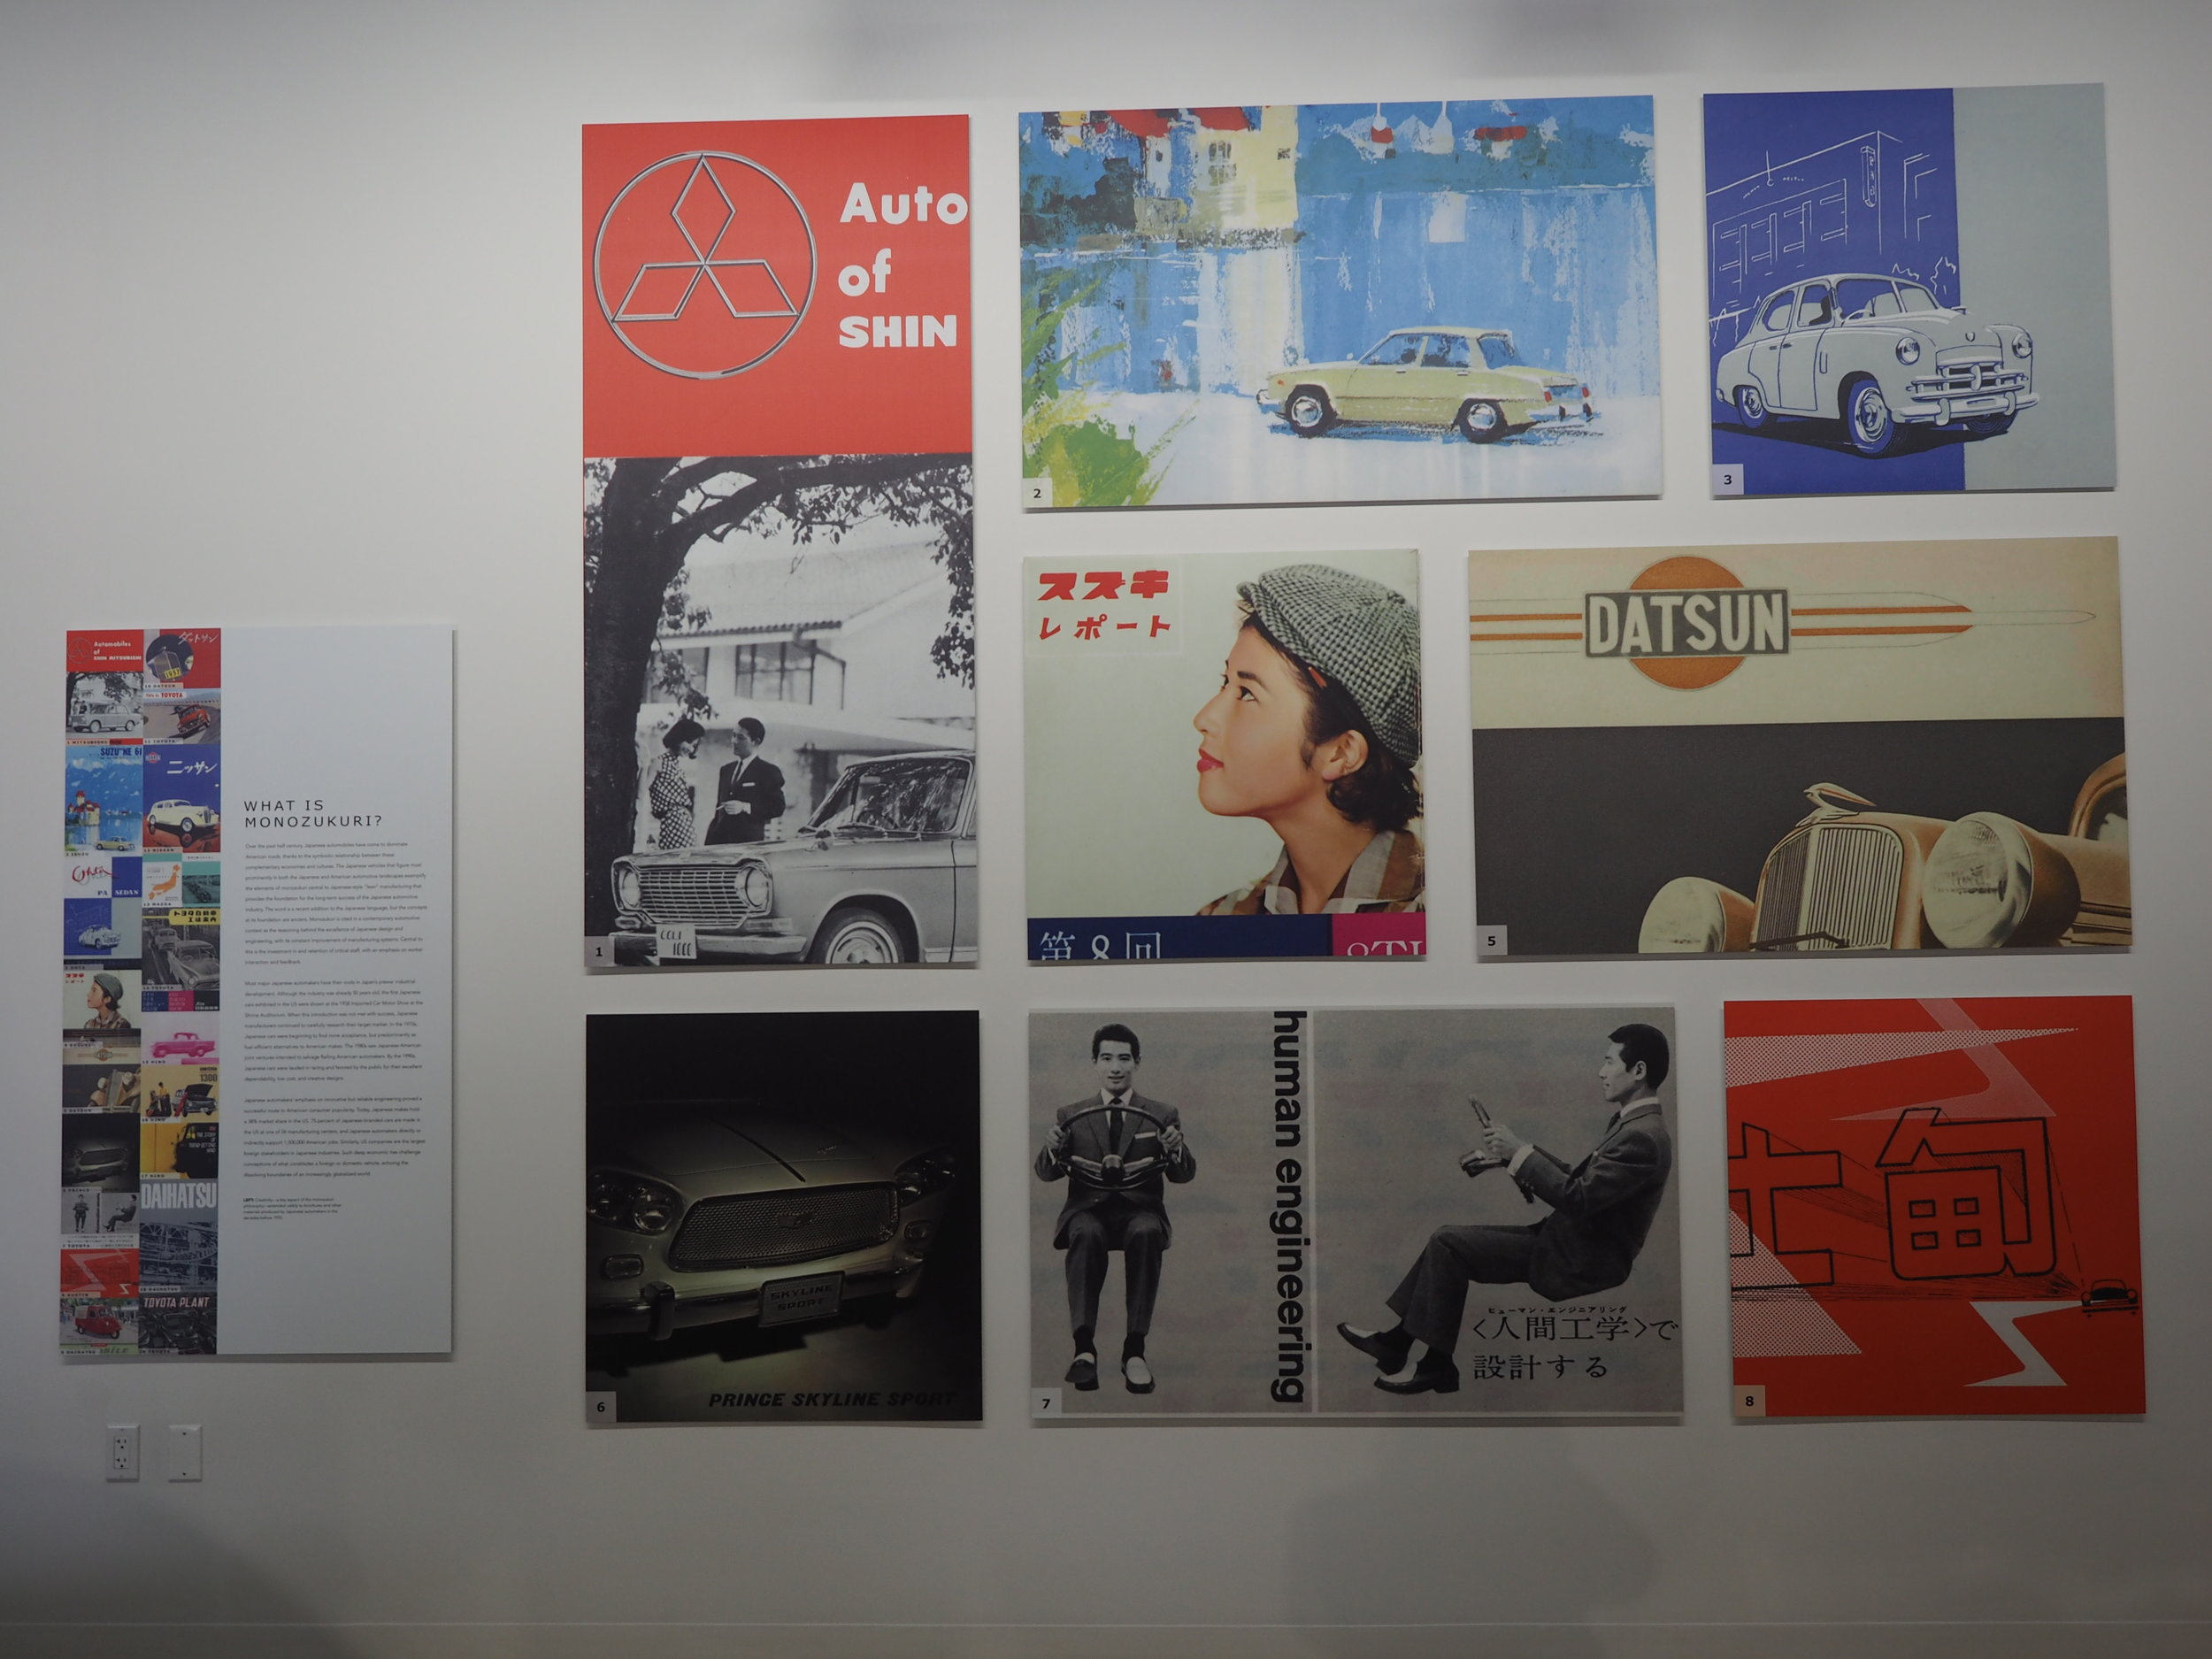 The exhibit also showcases examples of early Japanese automotive advertising.